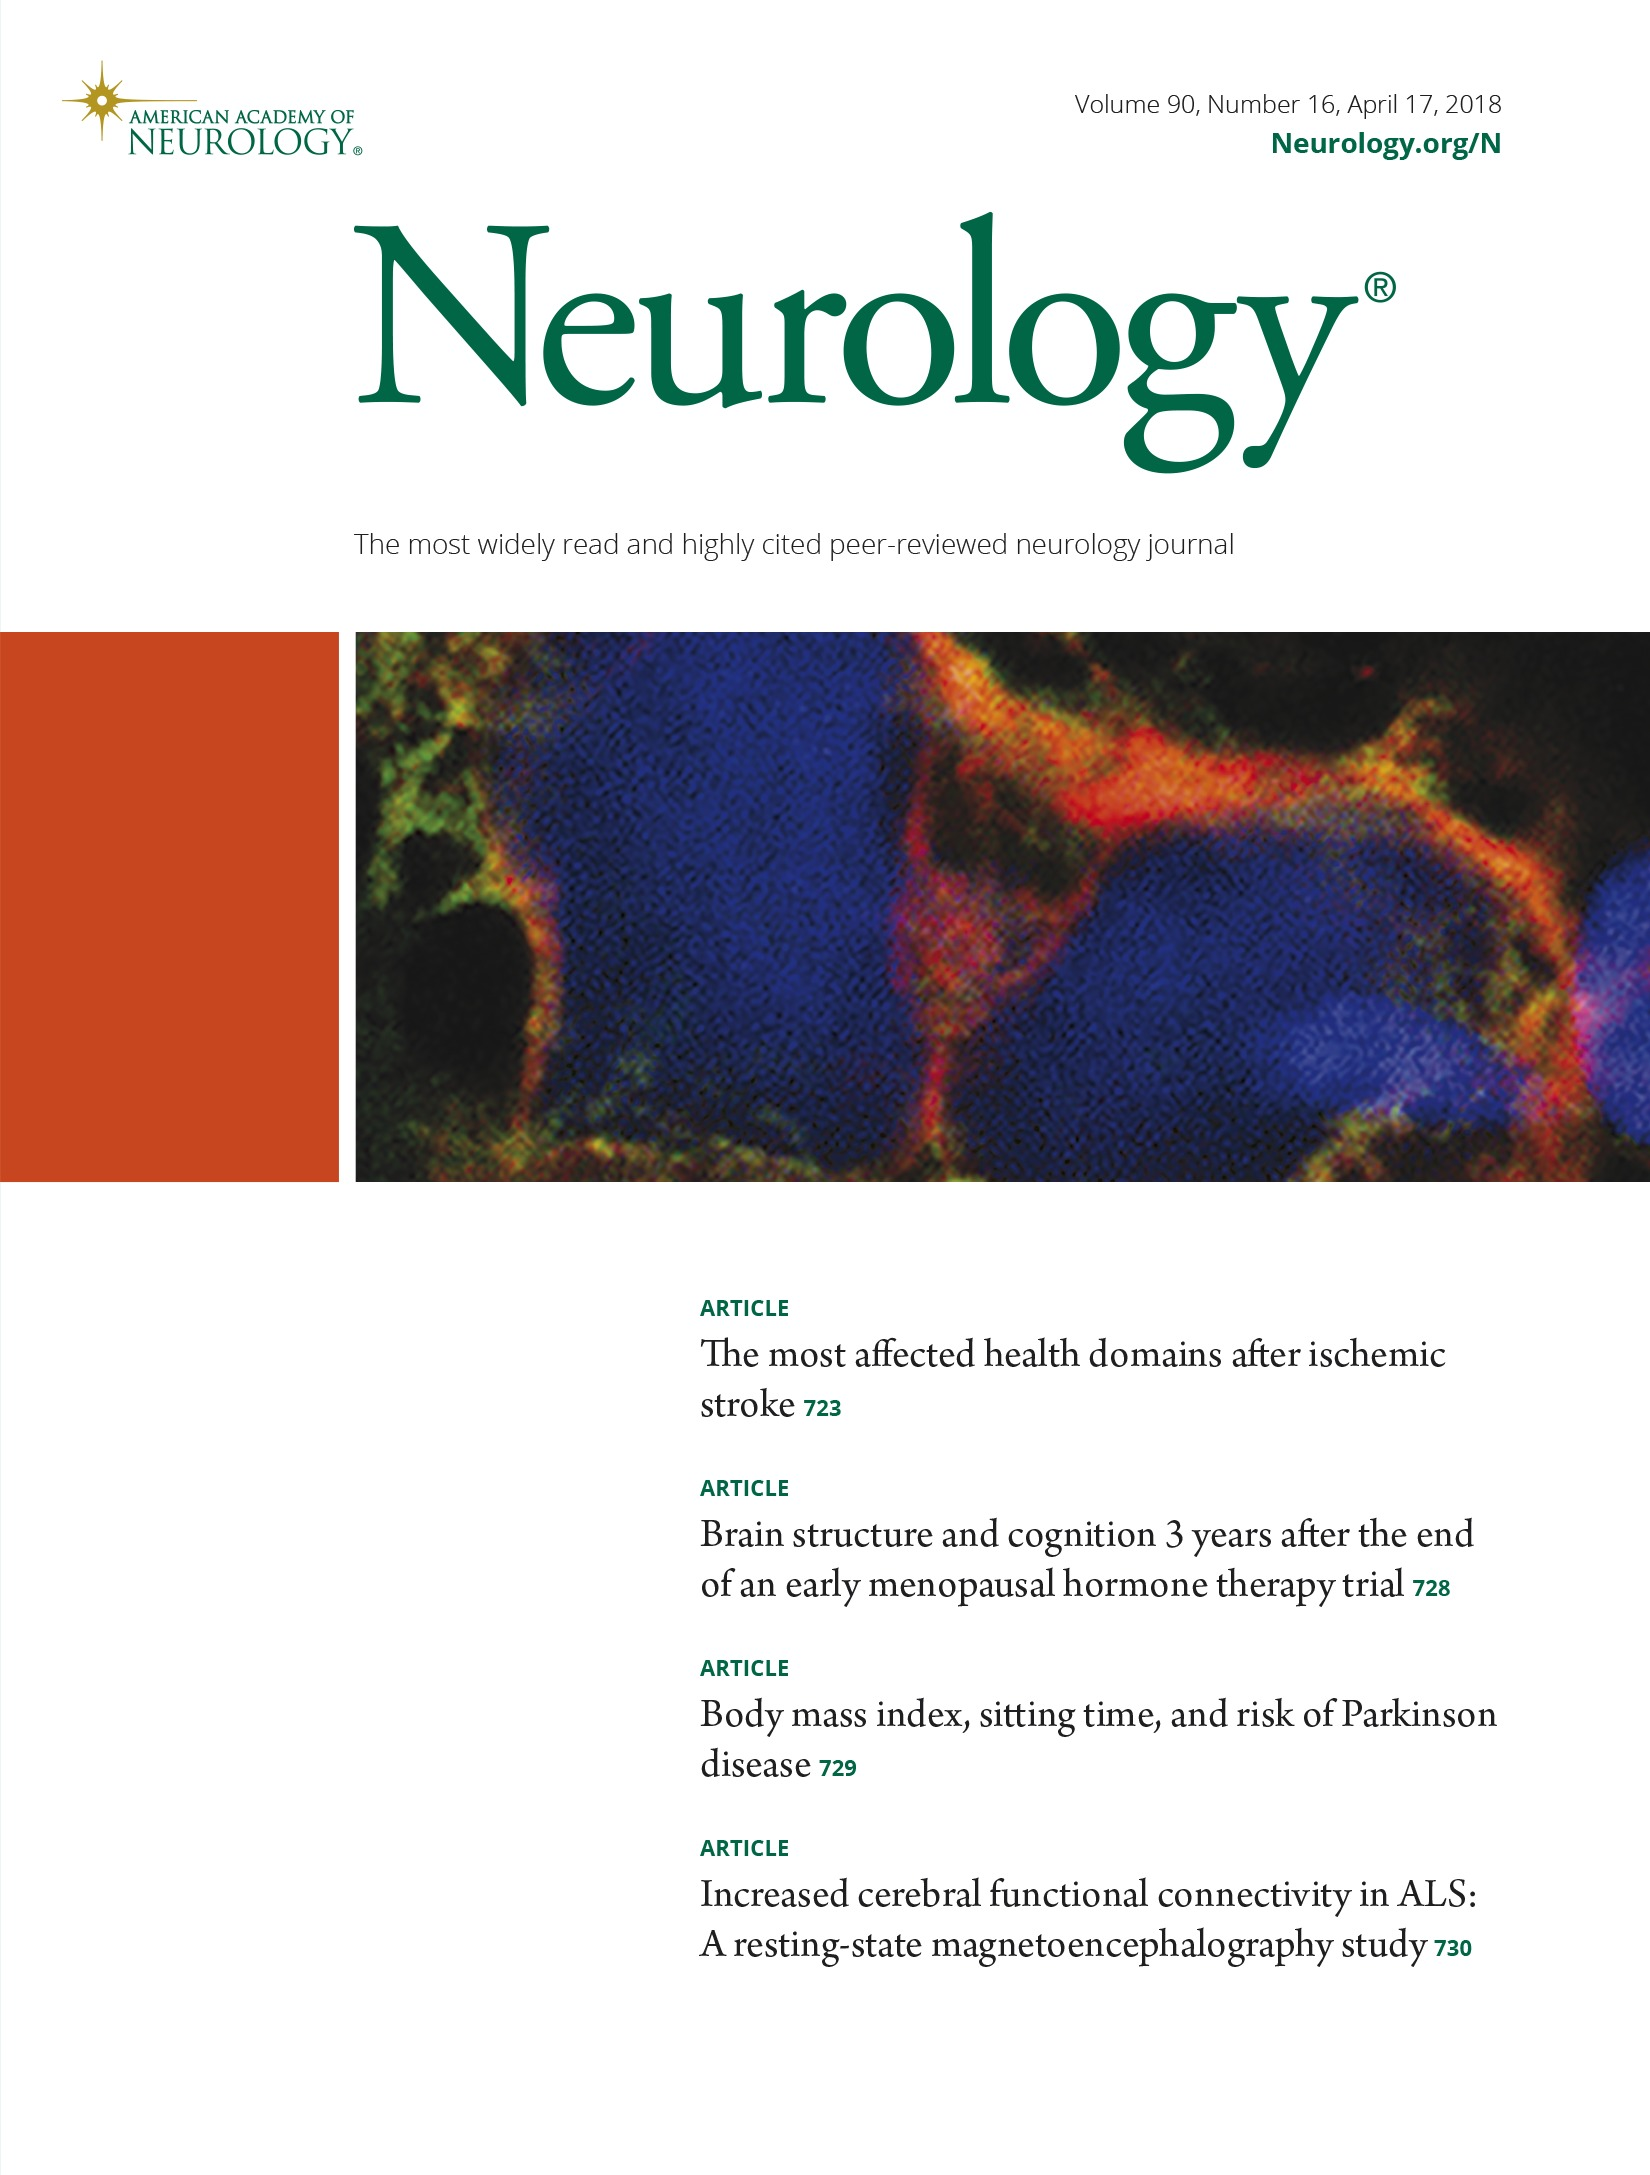 Increased cerebral functional connectivity in ALS | Neurology